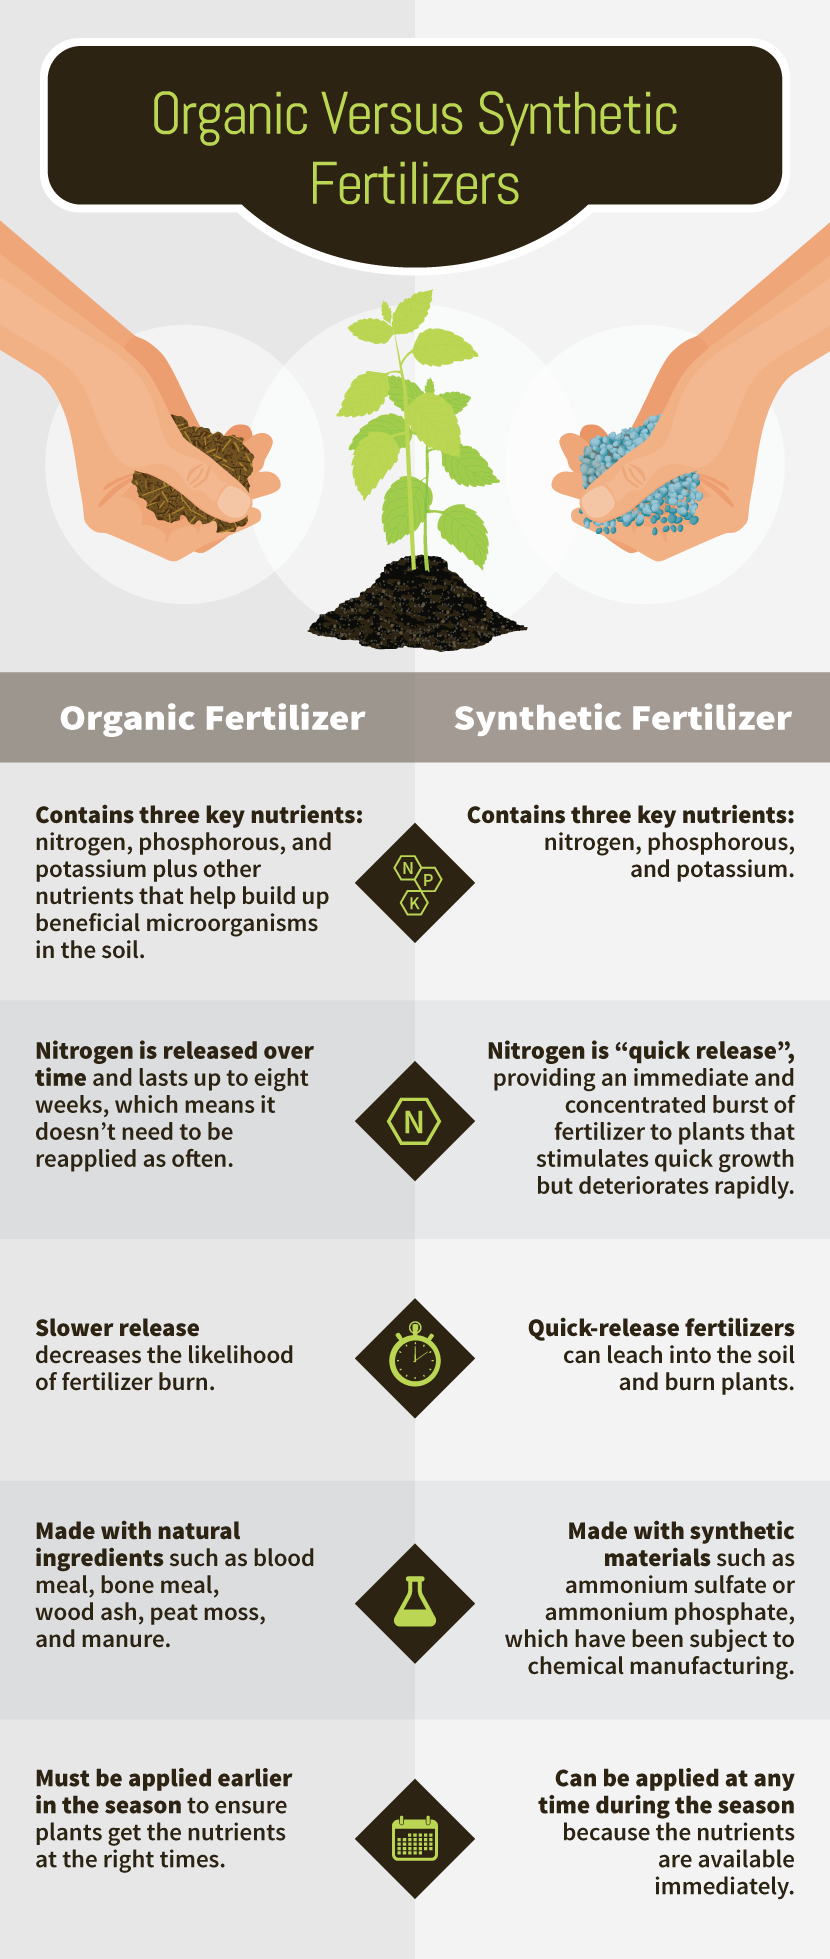 Organic Vs. Synthetic - Making Your Own Environmentally Friendly Garden Fertilizers Is Easier Than You Think